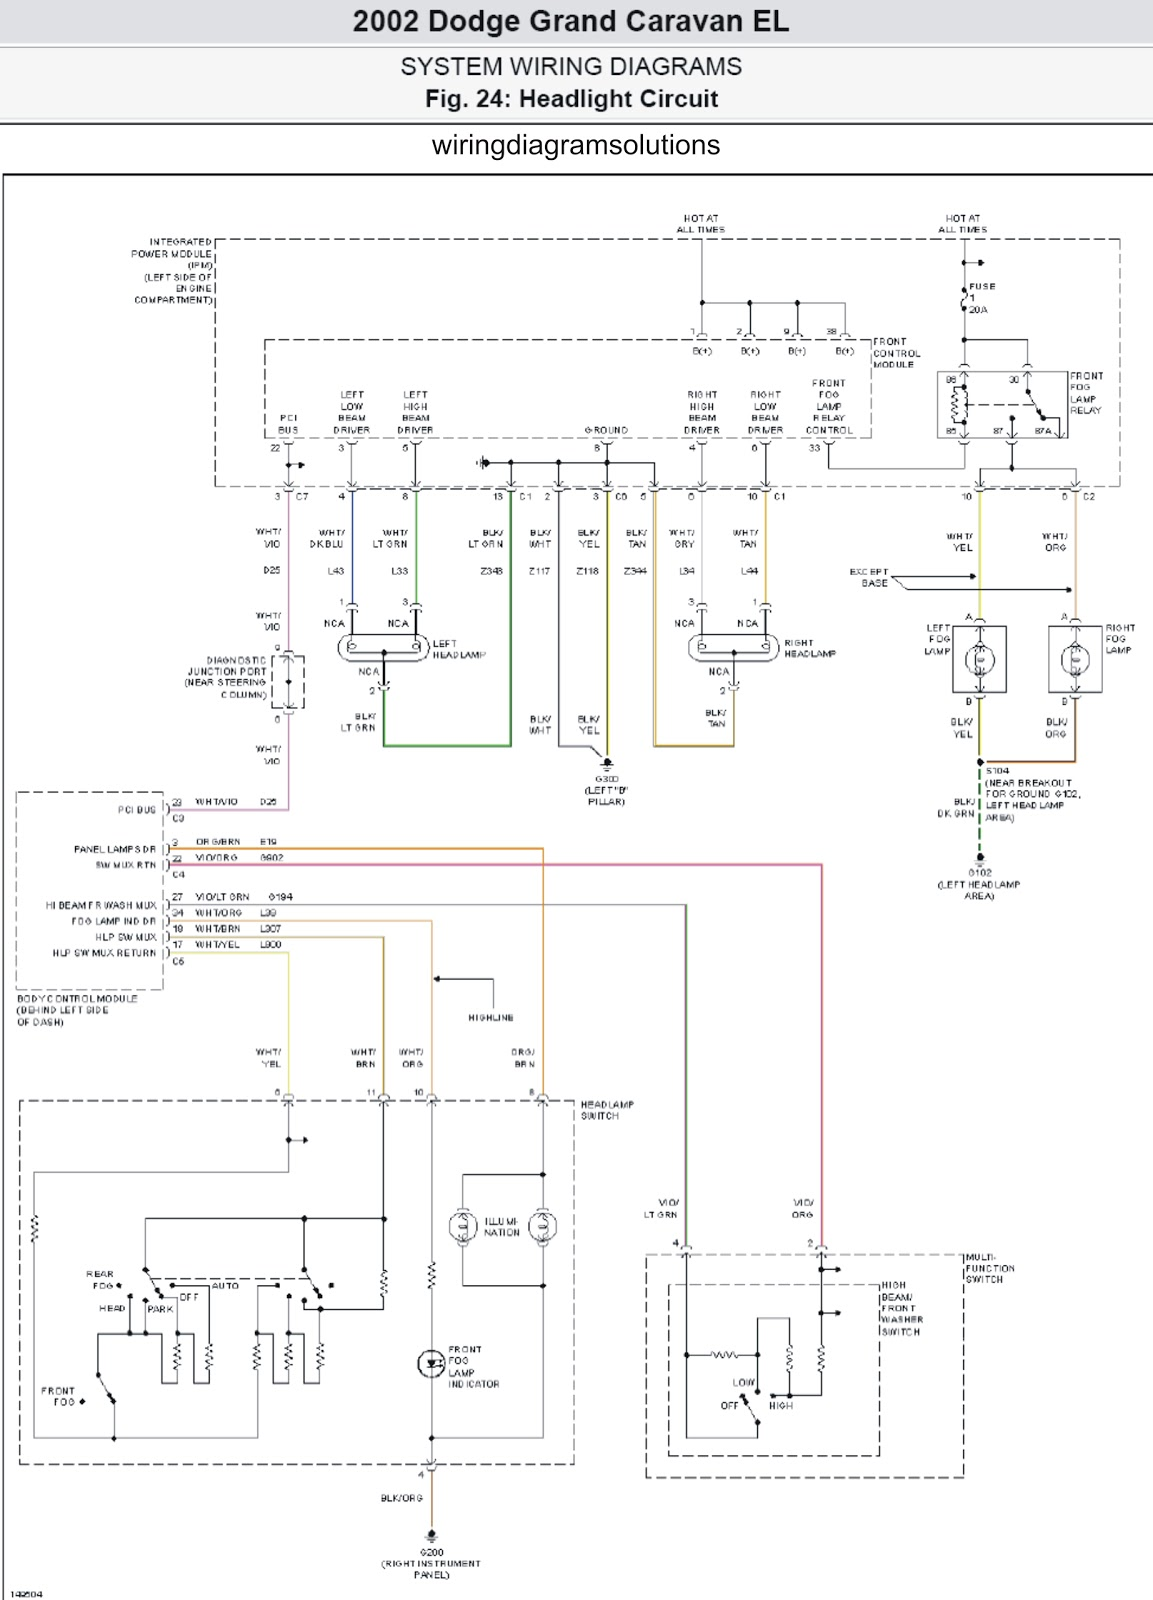 2002+dodge+caravan+Headlight+Circuit wiring diagram for 2015 dodge caravan readingrat net 2005 dodge caravan wiring diagram at crackthecode.co